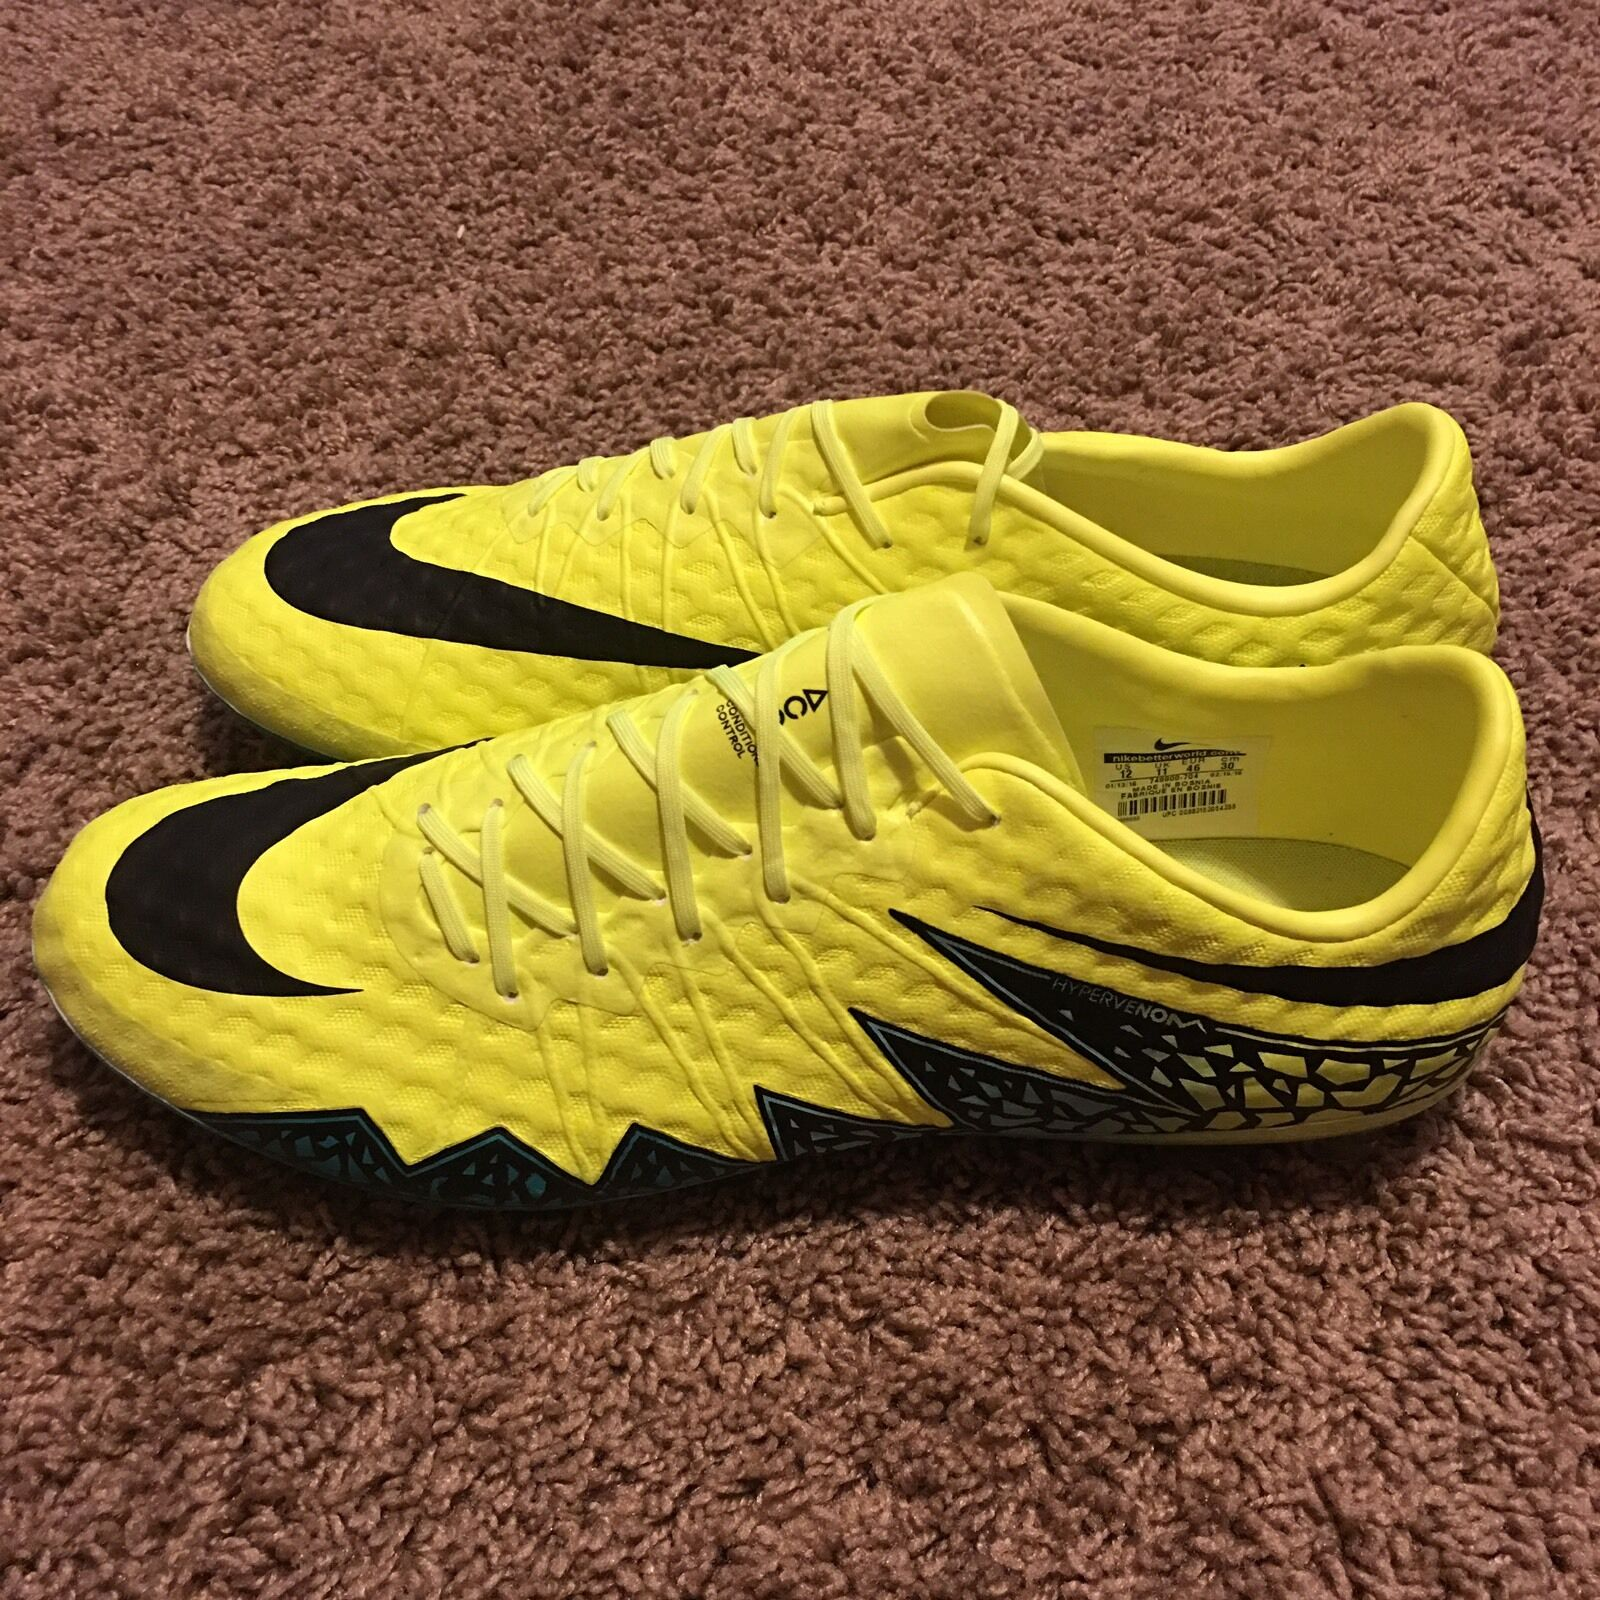 Nike Hypervenom Phinish AG-R 12 Cleat ACC Volt 749900 704 Magista Mercurial